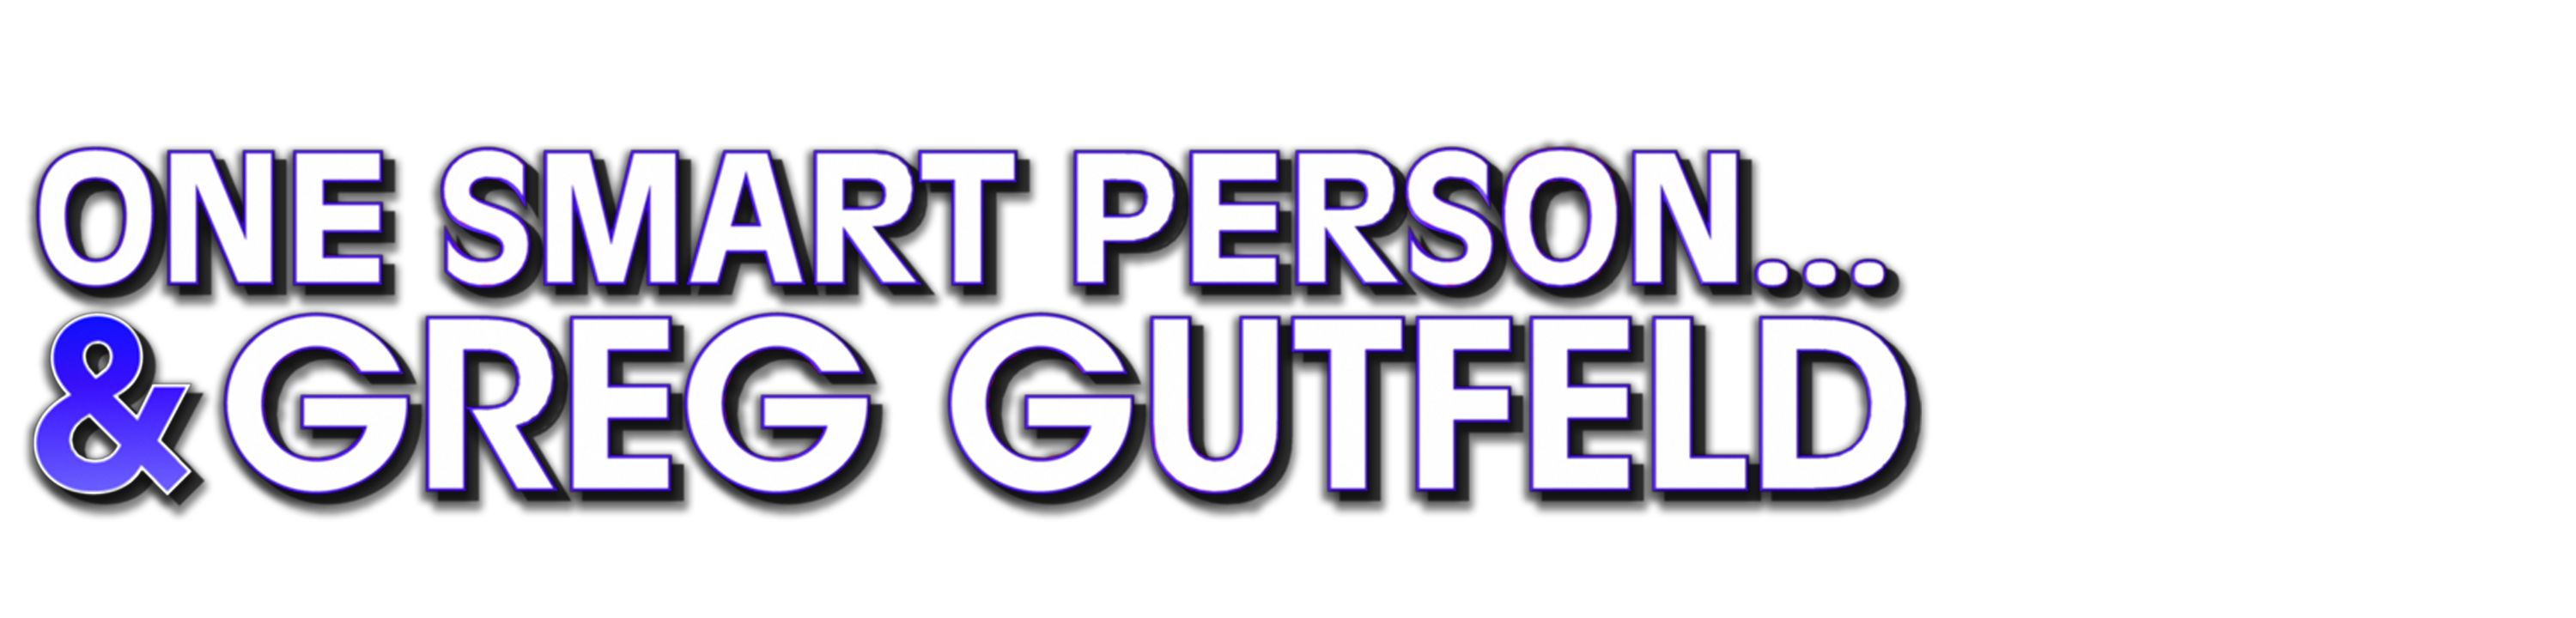 One Smart Person and Greg Gutfeld